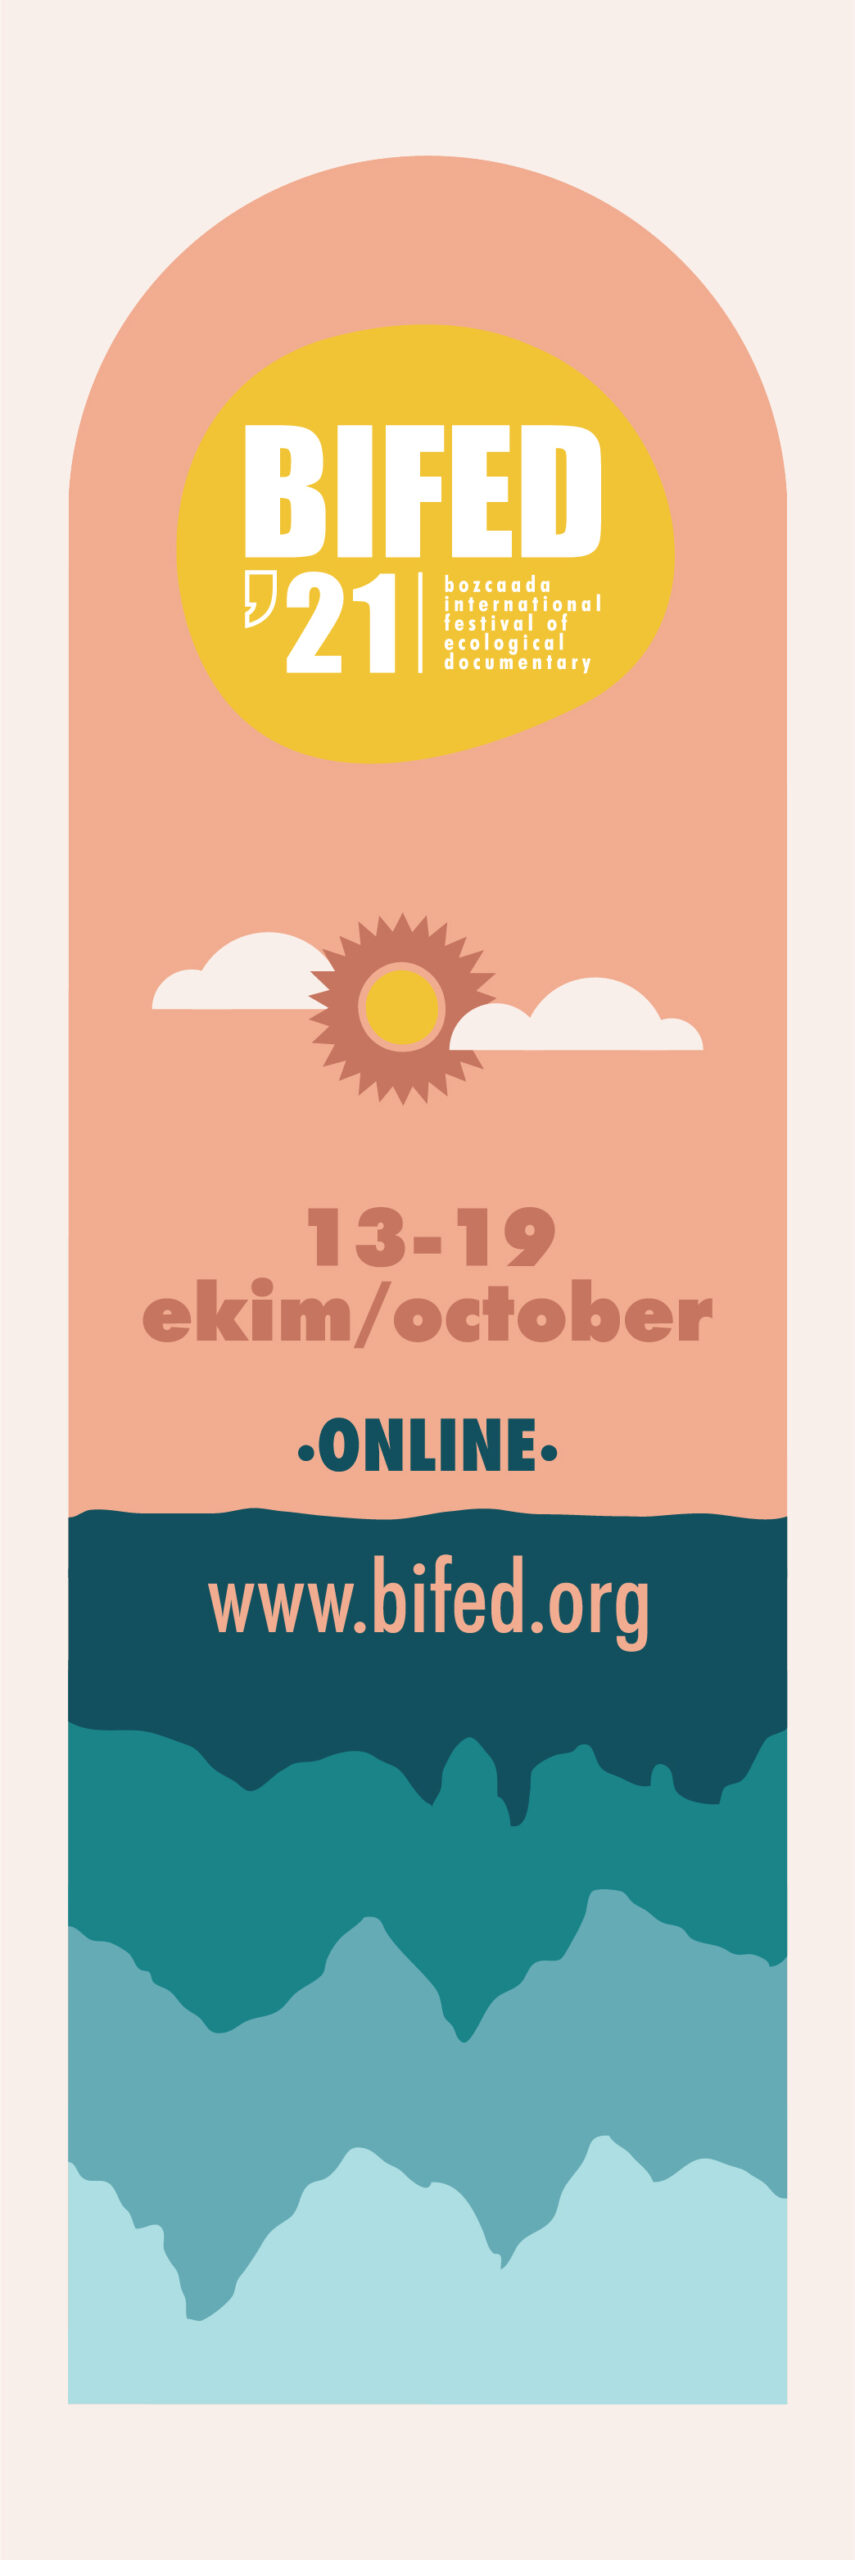 BIFED 2021 Poster